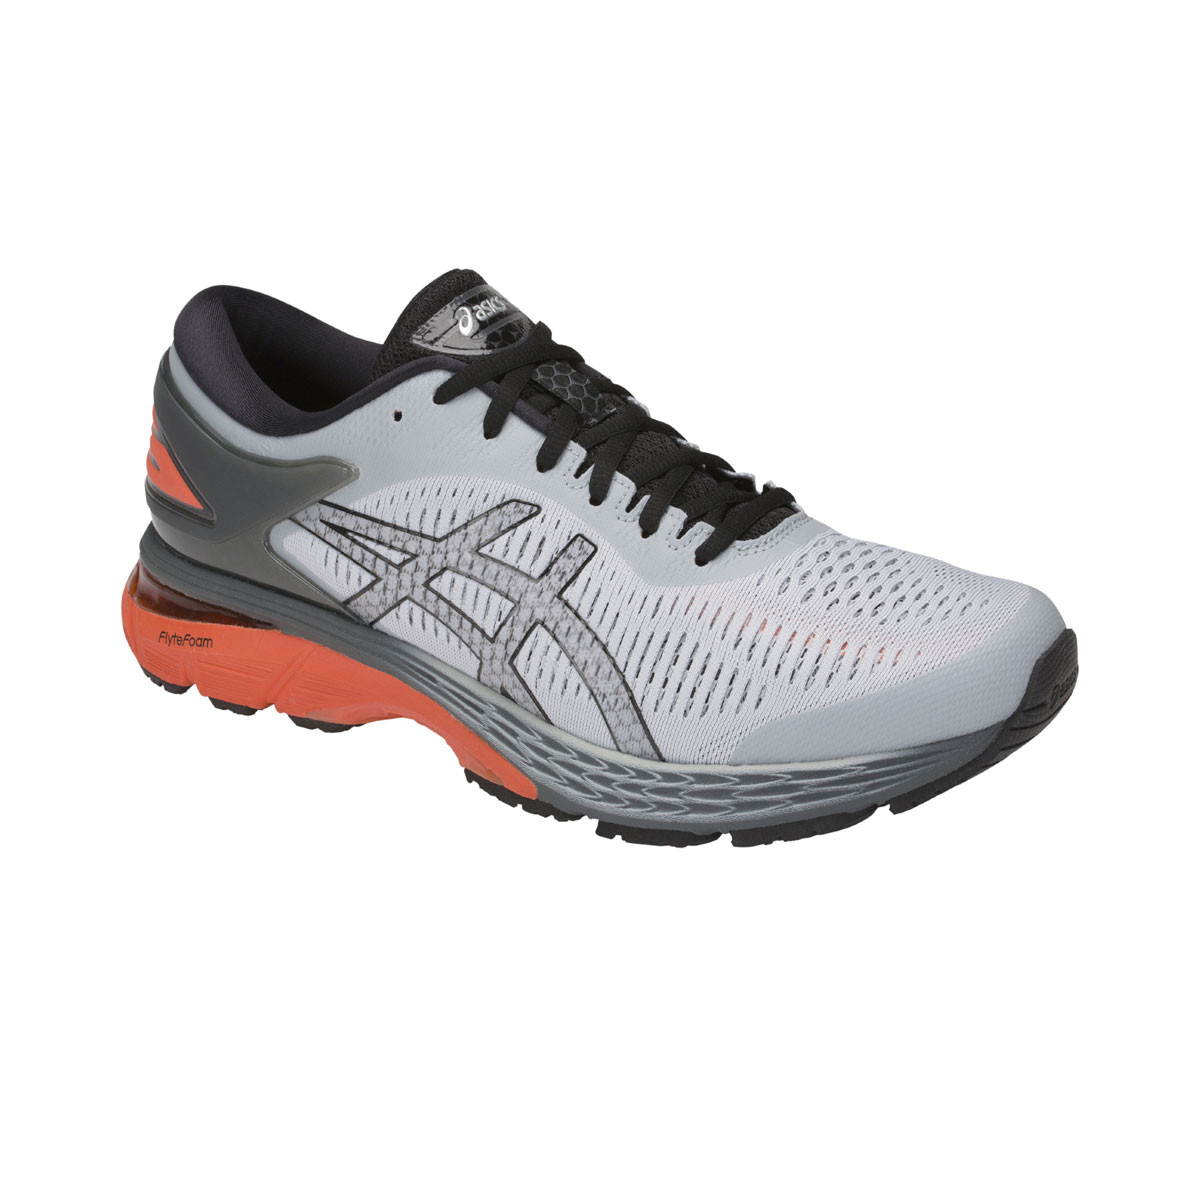 Chaussure de running Gel Kayano 25 - Mid Grey/Nova Orange